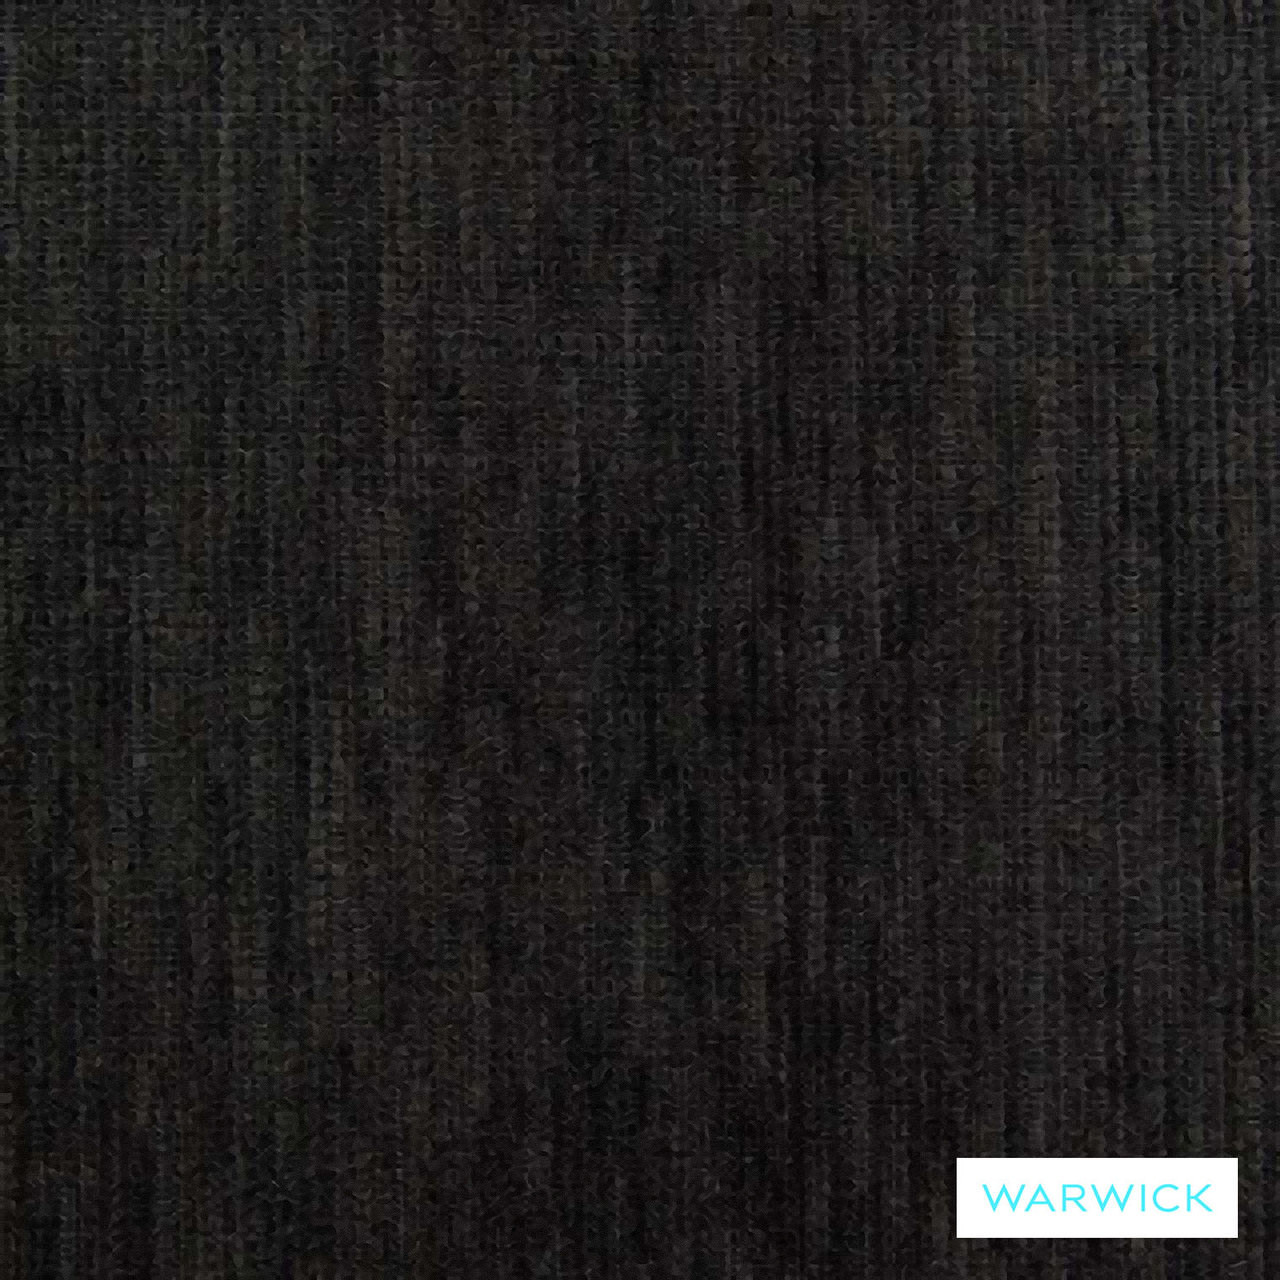 Warwick Tangent Rover Charcoal  | Upholstery Fabric - Plain, Black - Charcoal, Synthetic, Washable, Commercial Use, Domestic Use, Halo, Standard Width